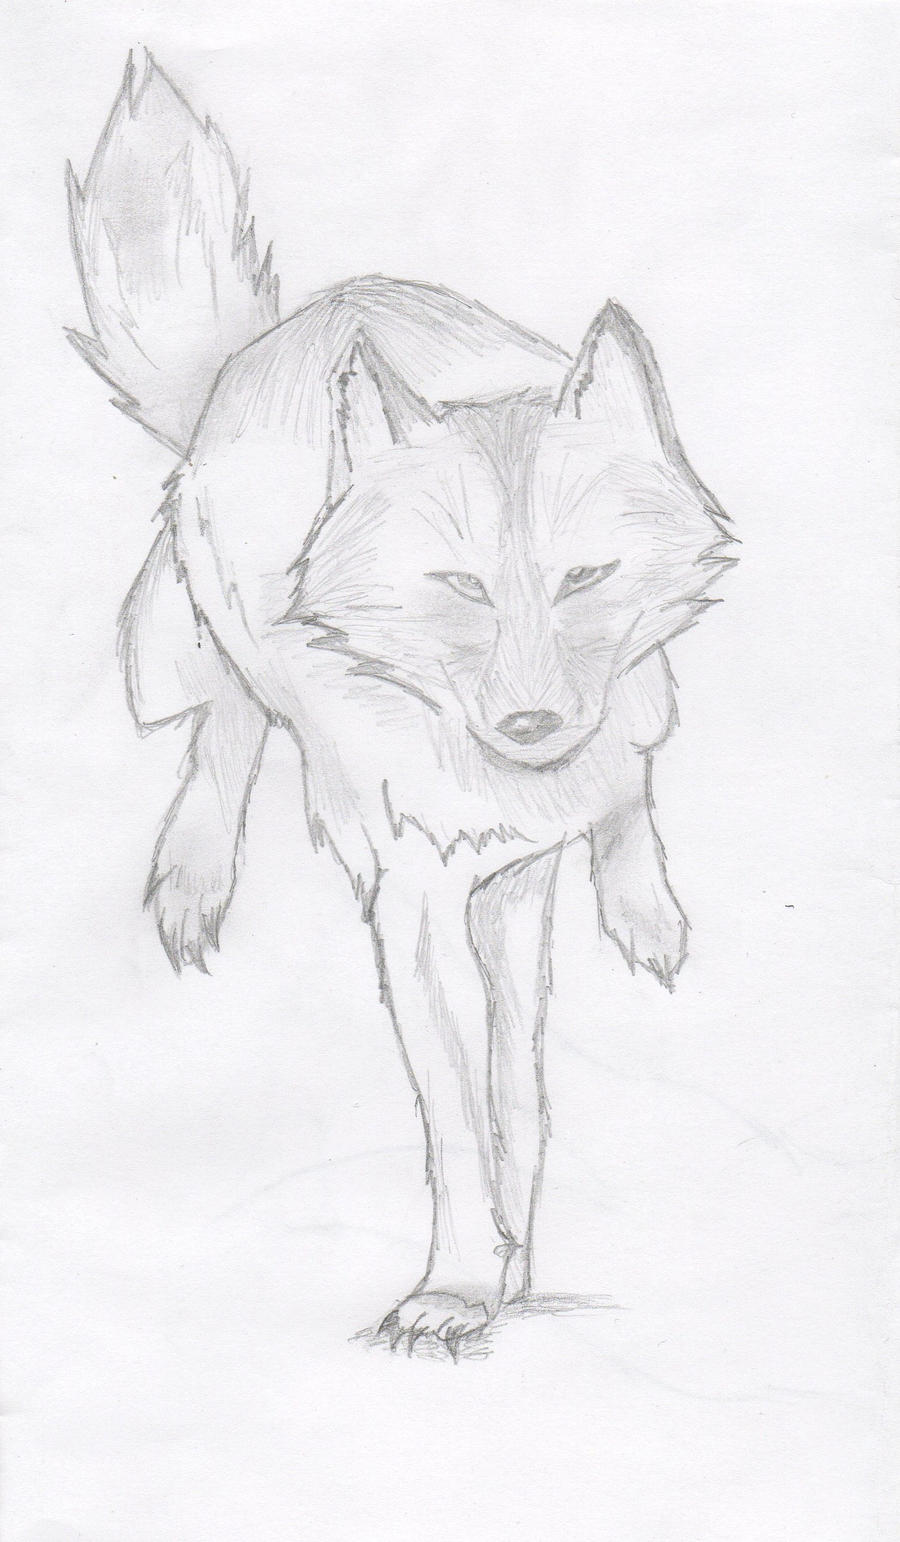 Running Wolf By Hgbird Running Wolf By Hgbird How To Draw '